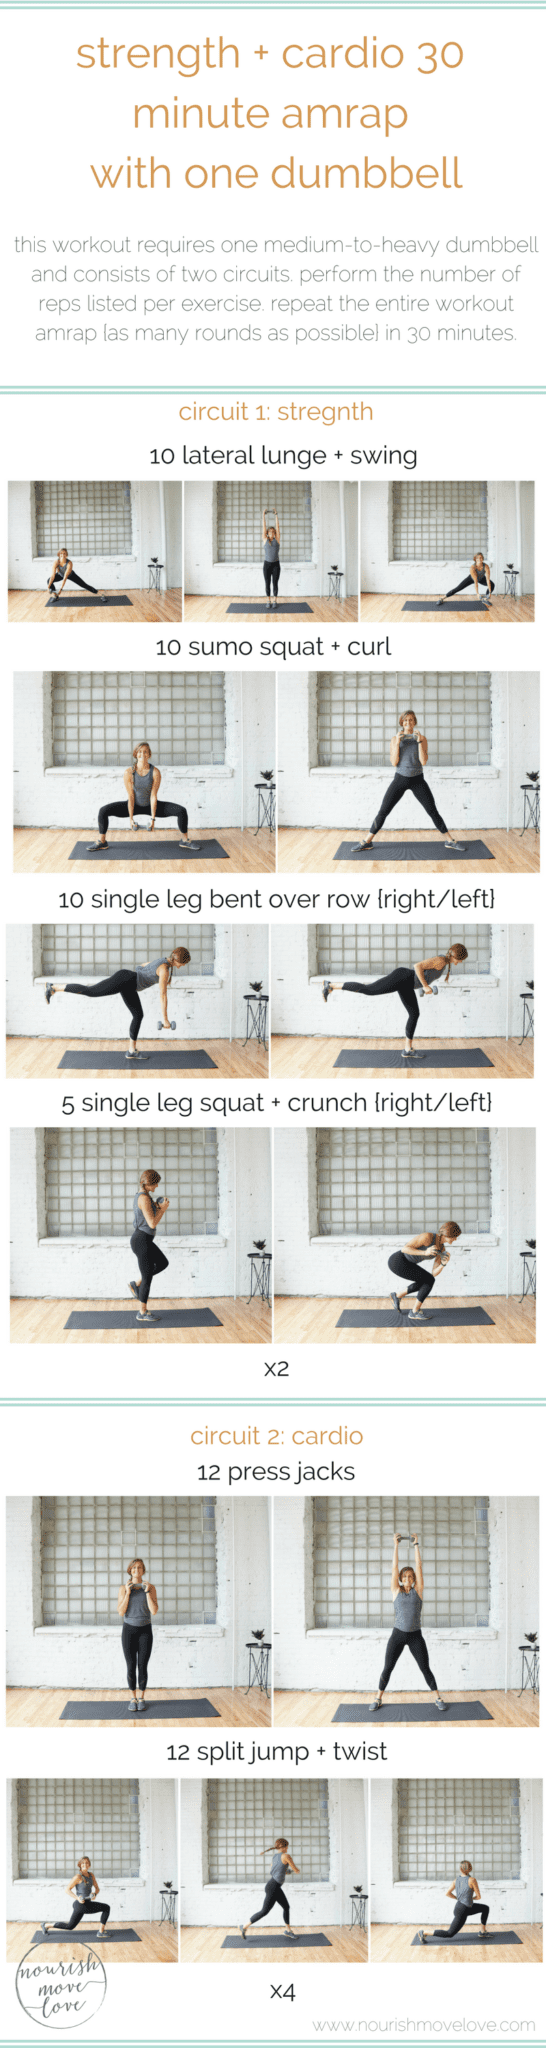 strength + cardio 30 minute amrap workout with one dumbbell | www.nourishmovelove.com